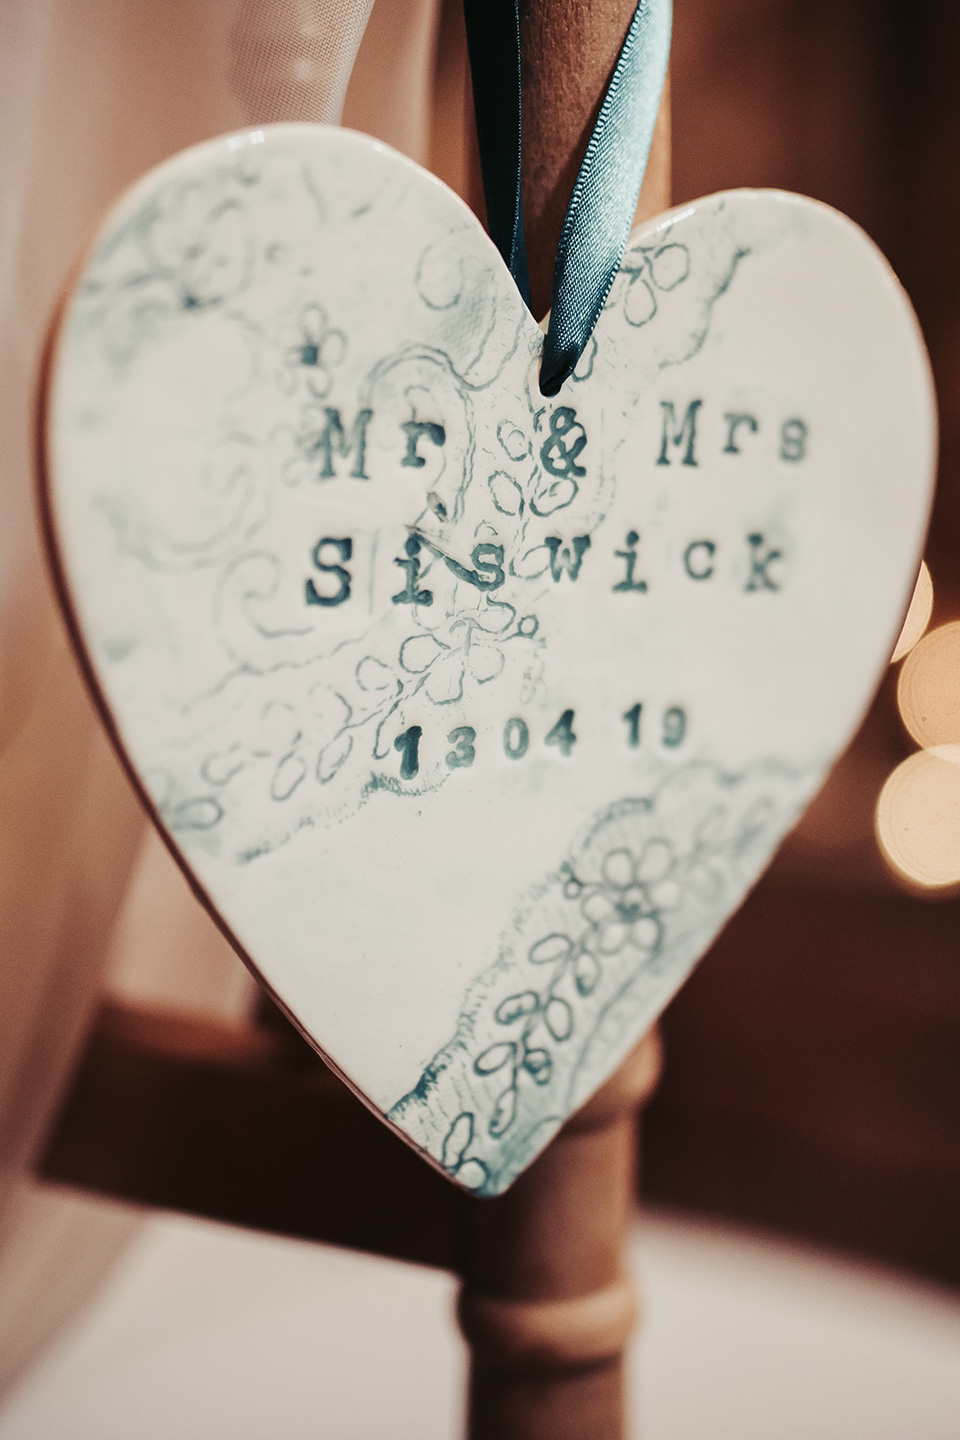 The couple decorated the venue with hints of teal and ceramic hearts